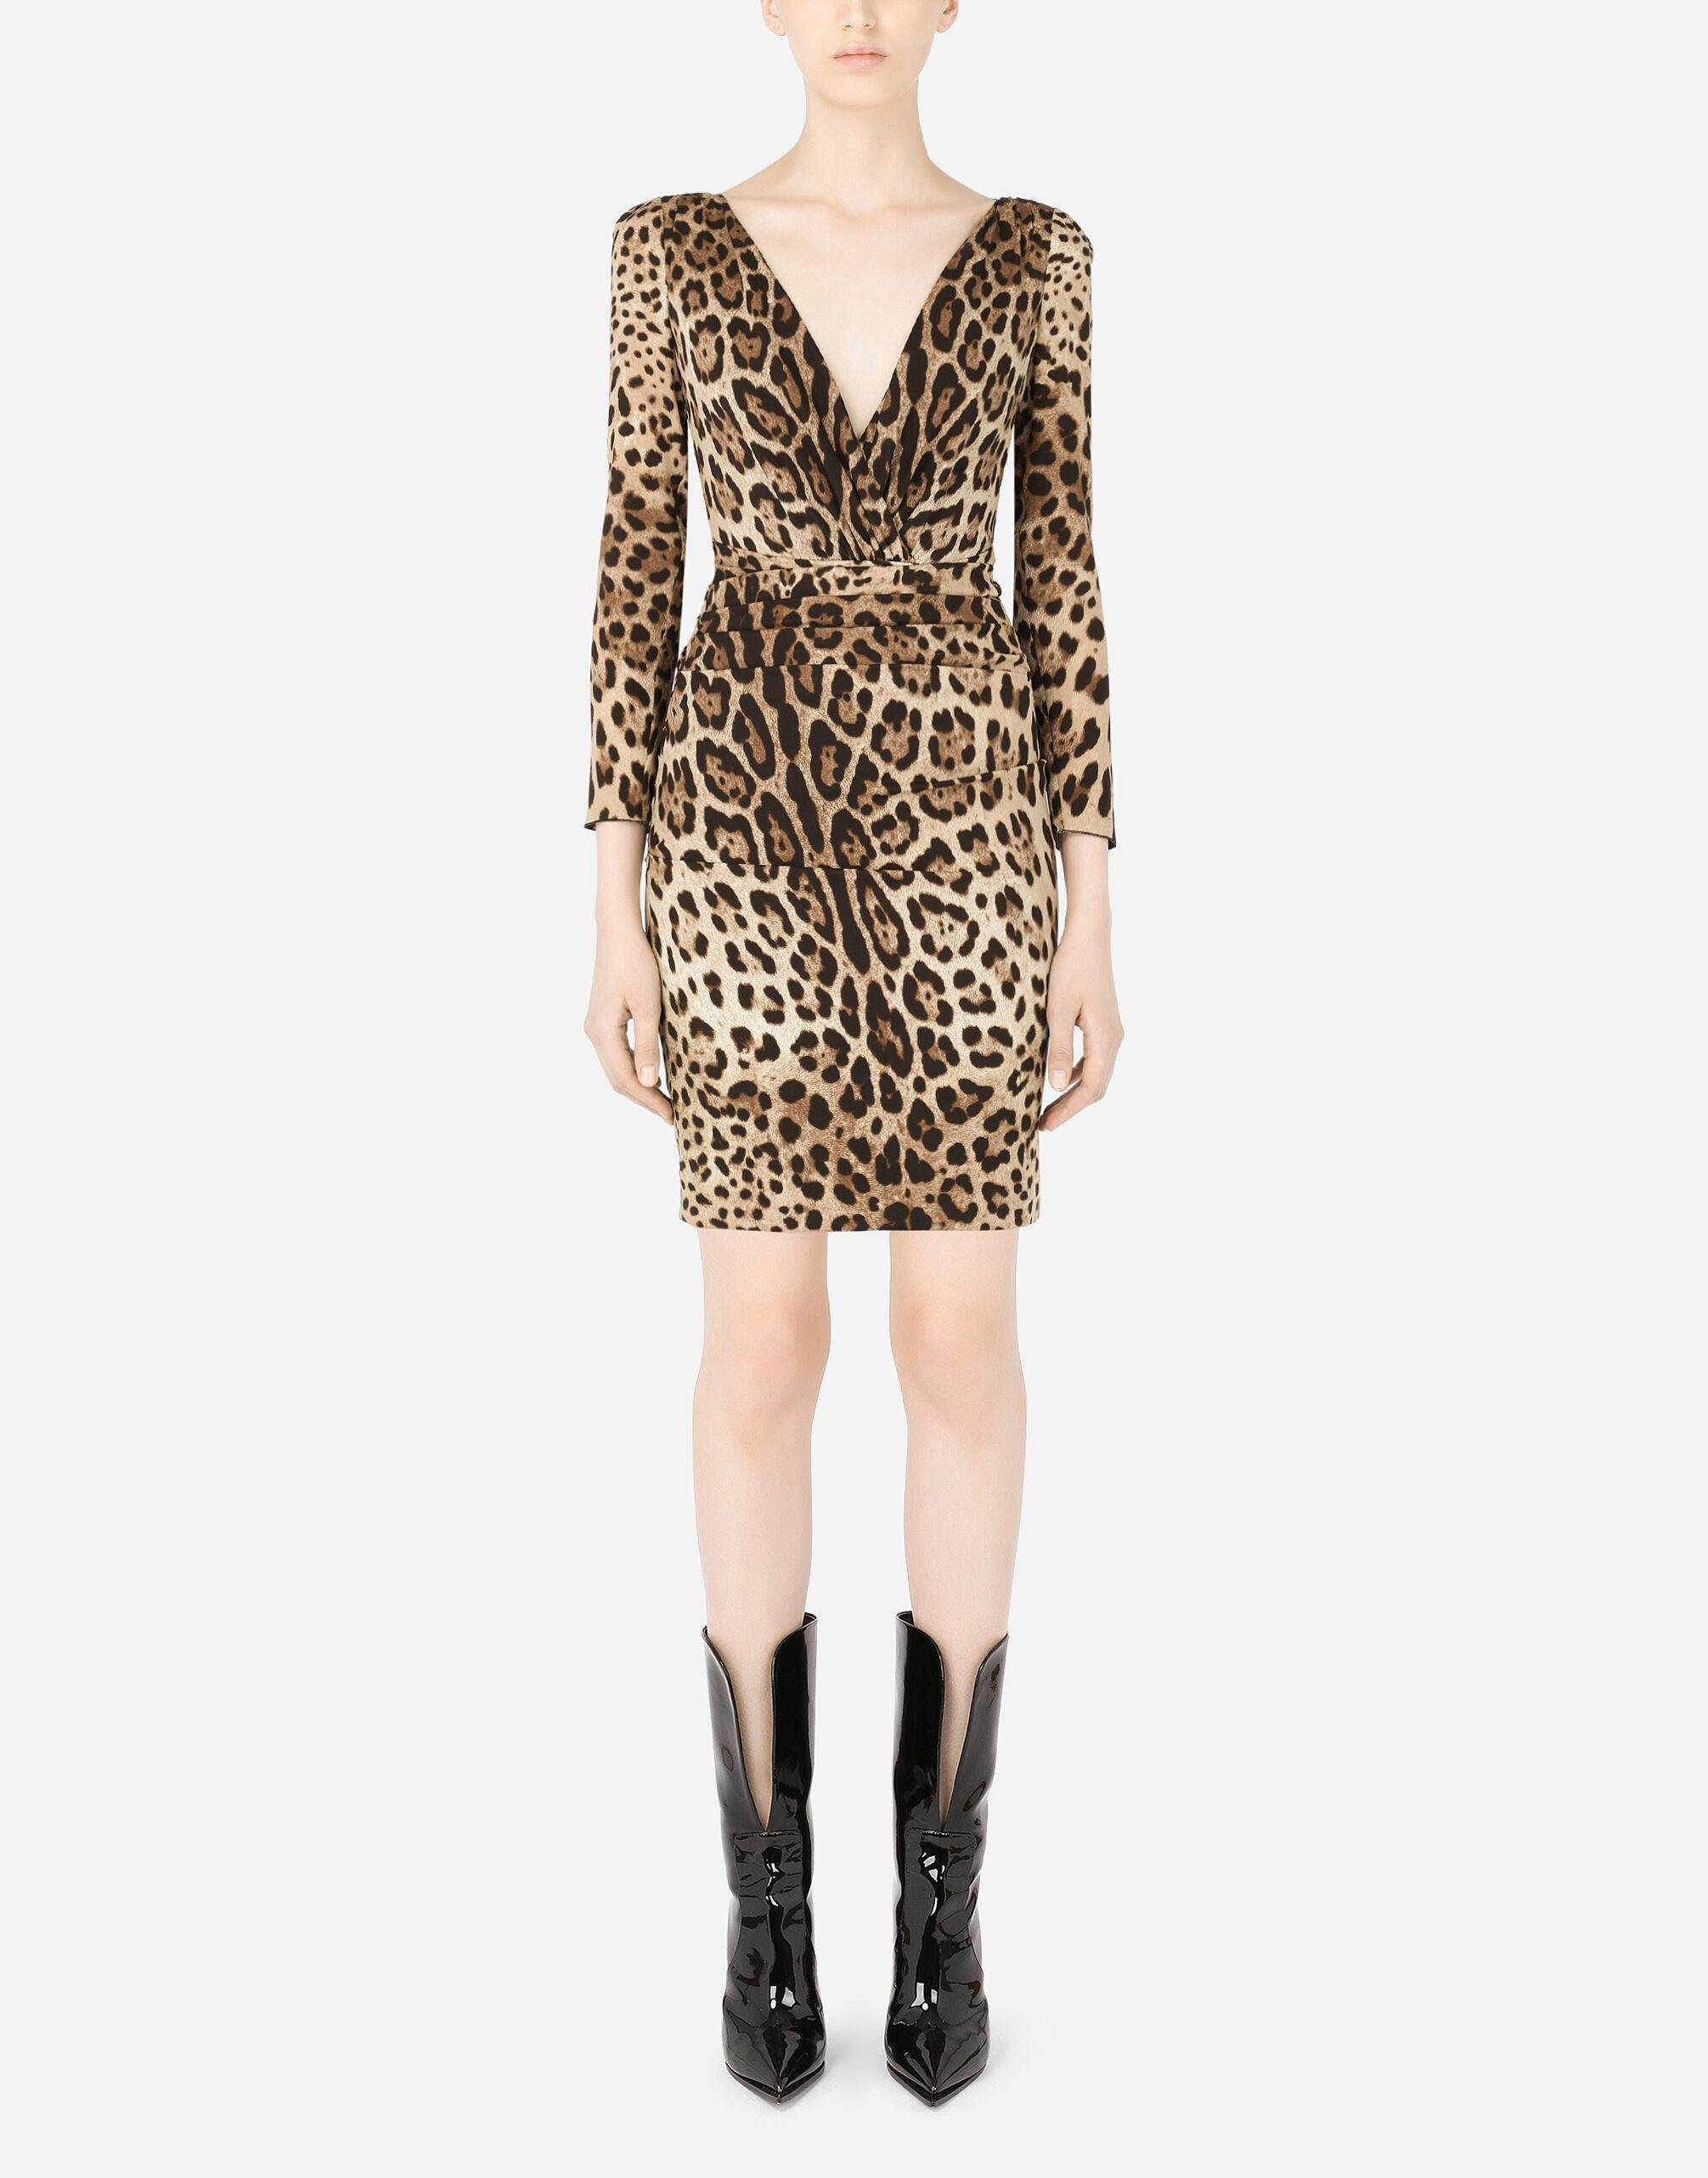 Short charmeuse dress with leopard print and tie